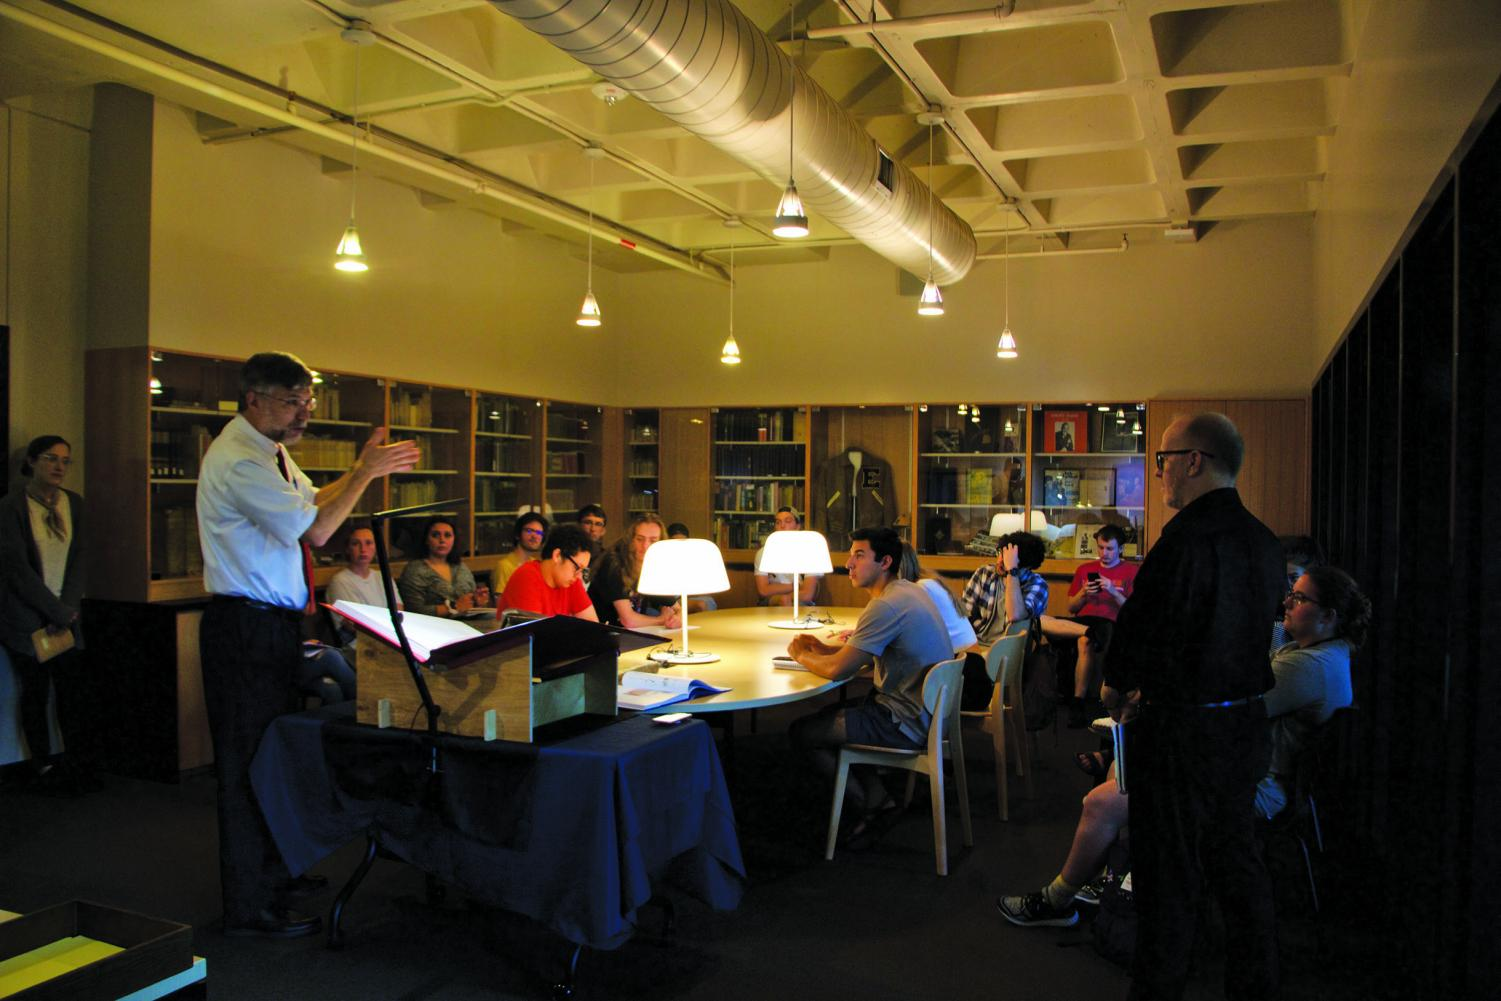 Students gathered in the Munday Library to witness the unveiling of the newly gifted St. John's Bible. The original copy was completed back in 2011.